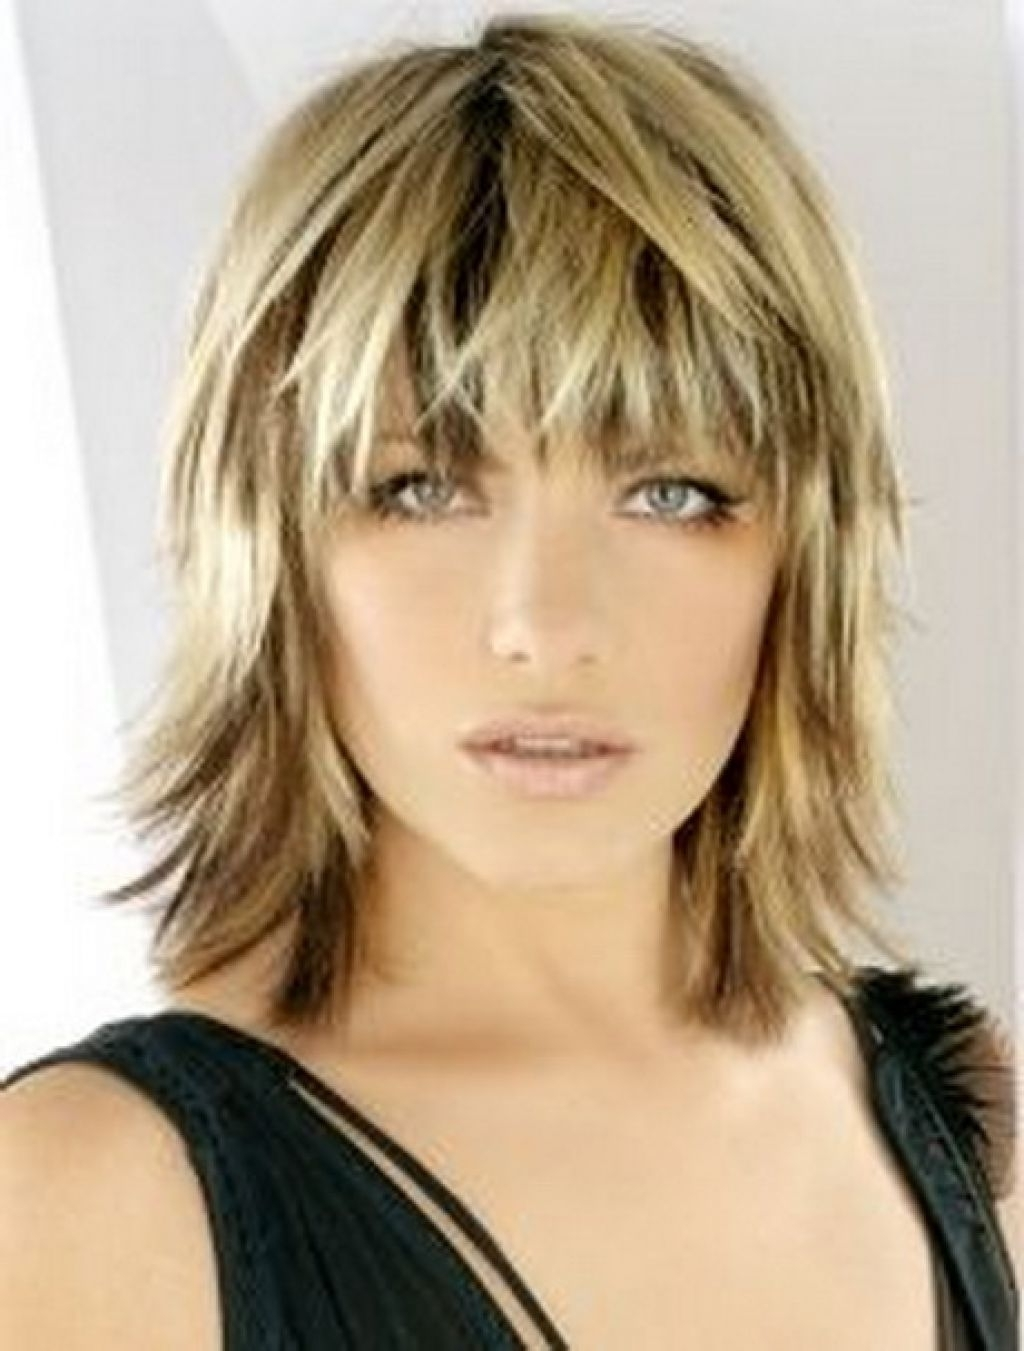 Latest Platinum Tresses Blonde Hairstyles With Shaggy Cut Inside Blonde Medium Length Choppy Shag Haircut With Wispy Bangs And Dark (View 13 of 20)